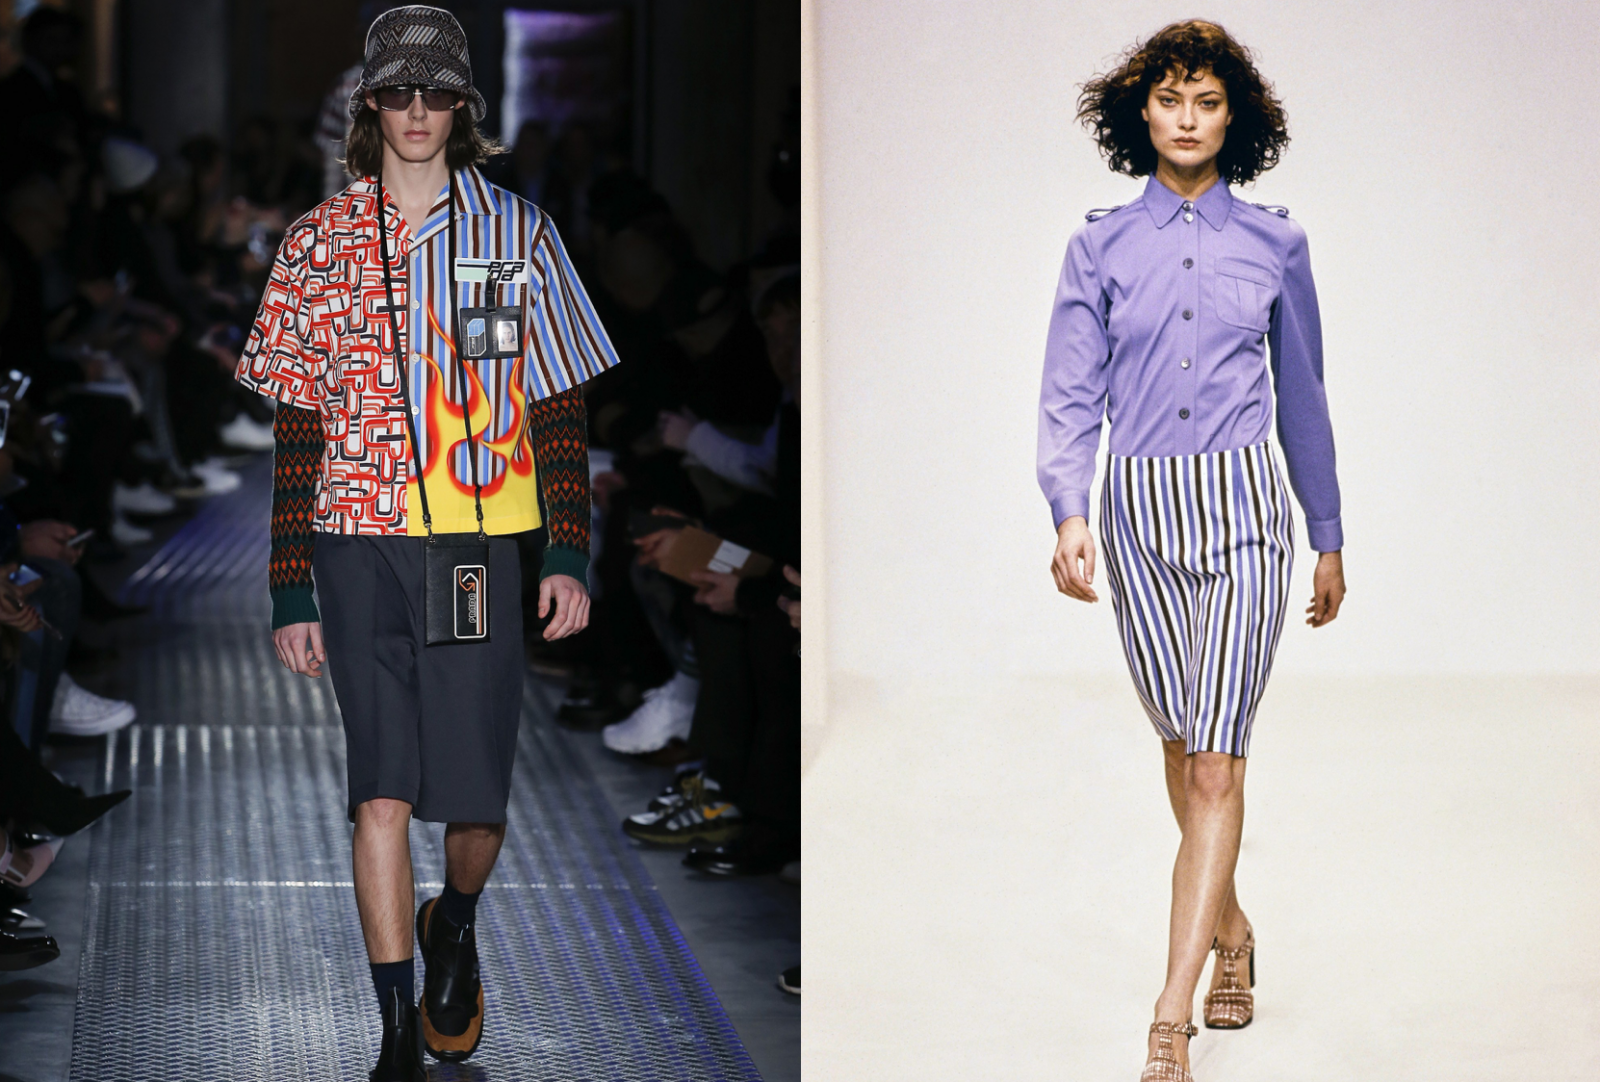 Prada F/W 2018 stripes (left) & Prada S/S 1996 (right)